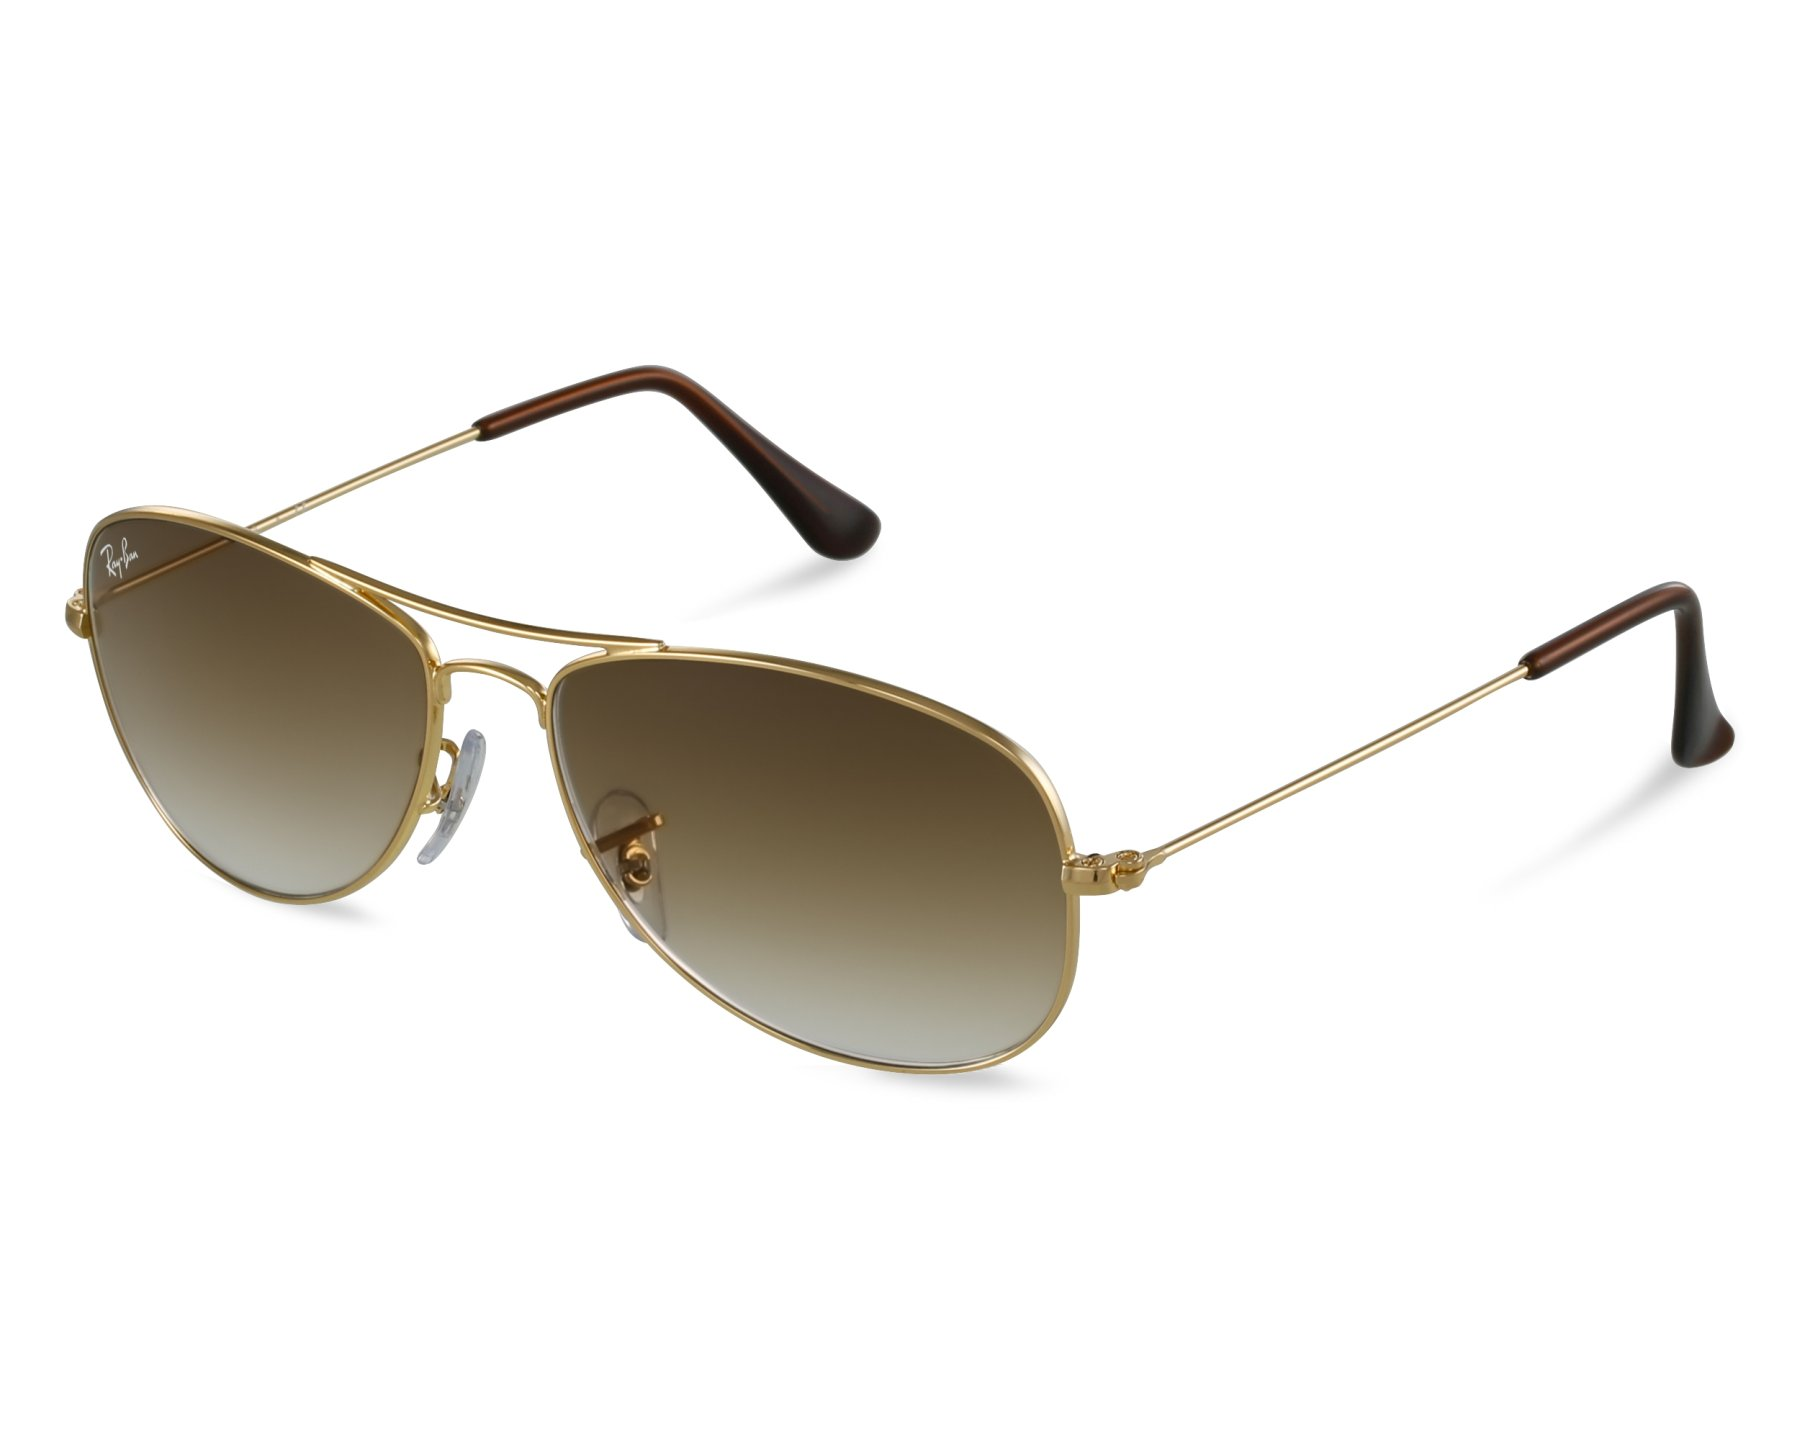 82bd4556ed84a Sunglasses Ray-Ban RB-3362 001 51 56-14 Gold front view